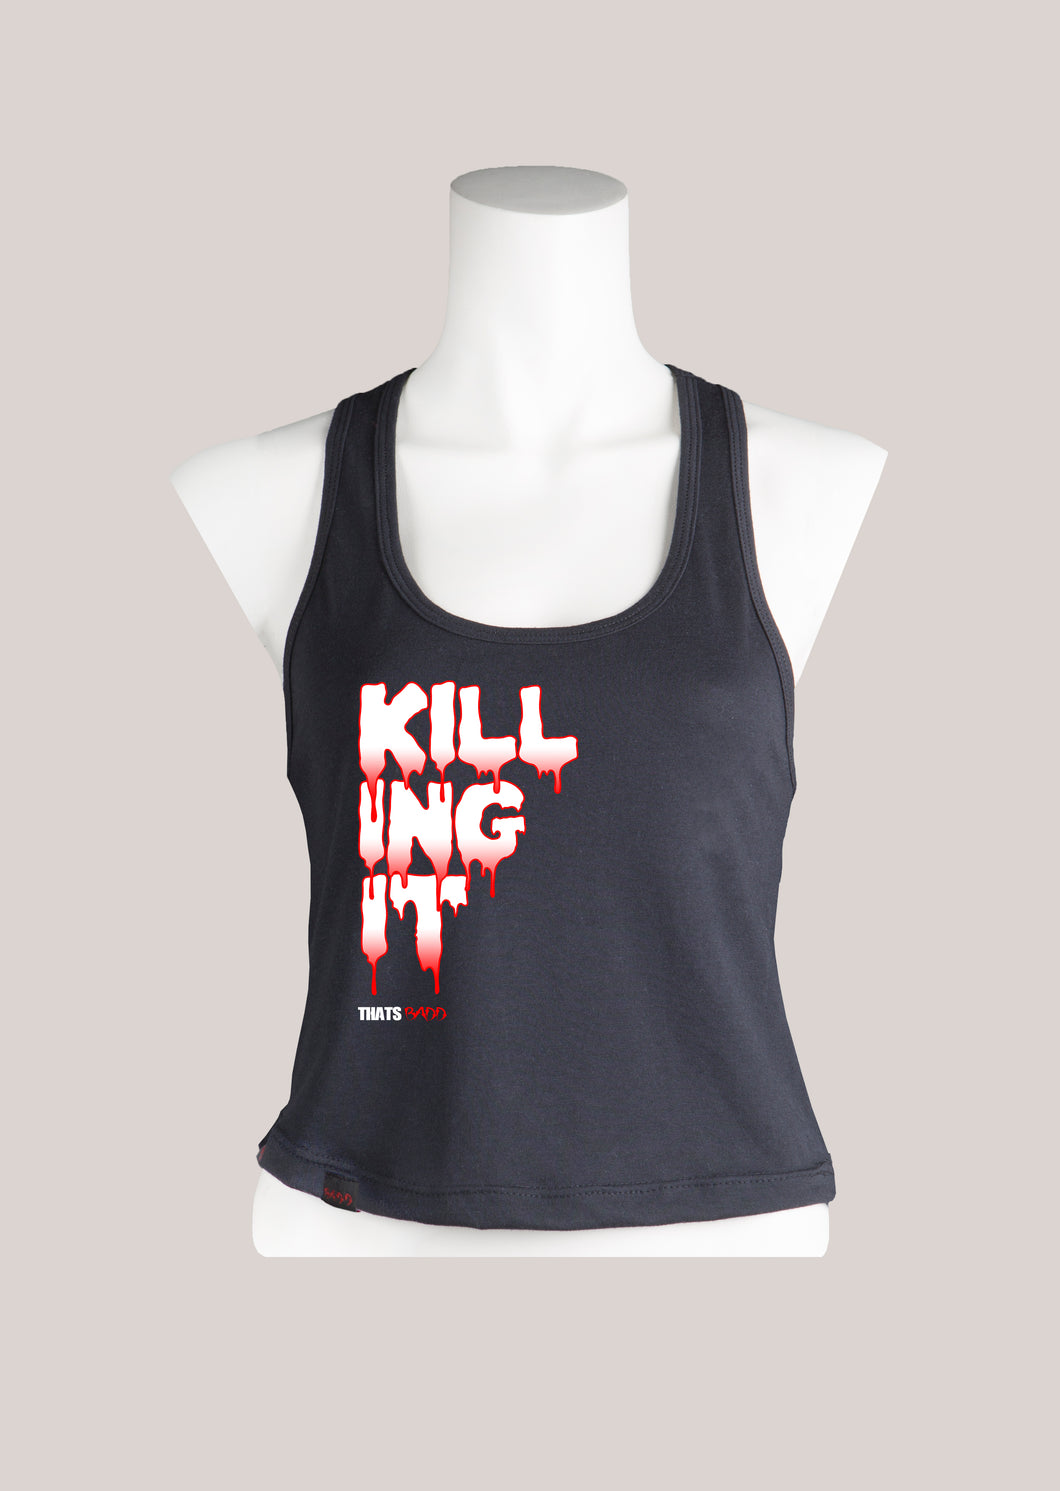 KILLING IT Women's Cropped Tank